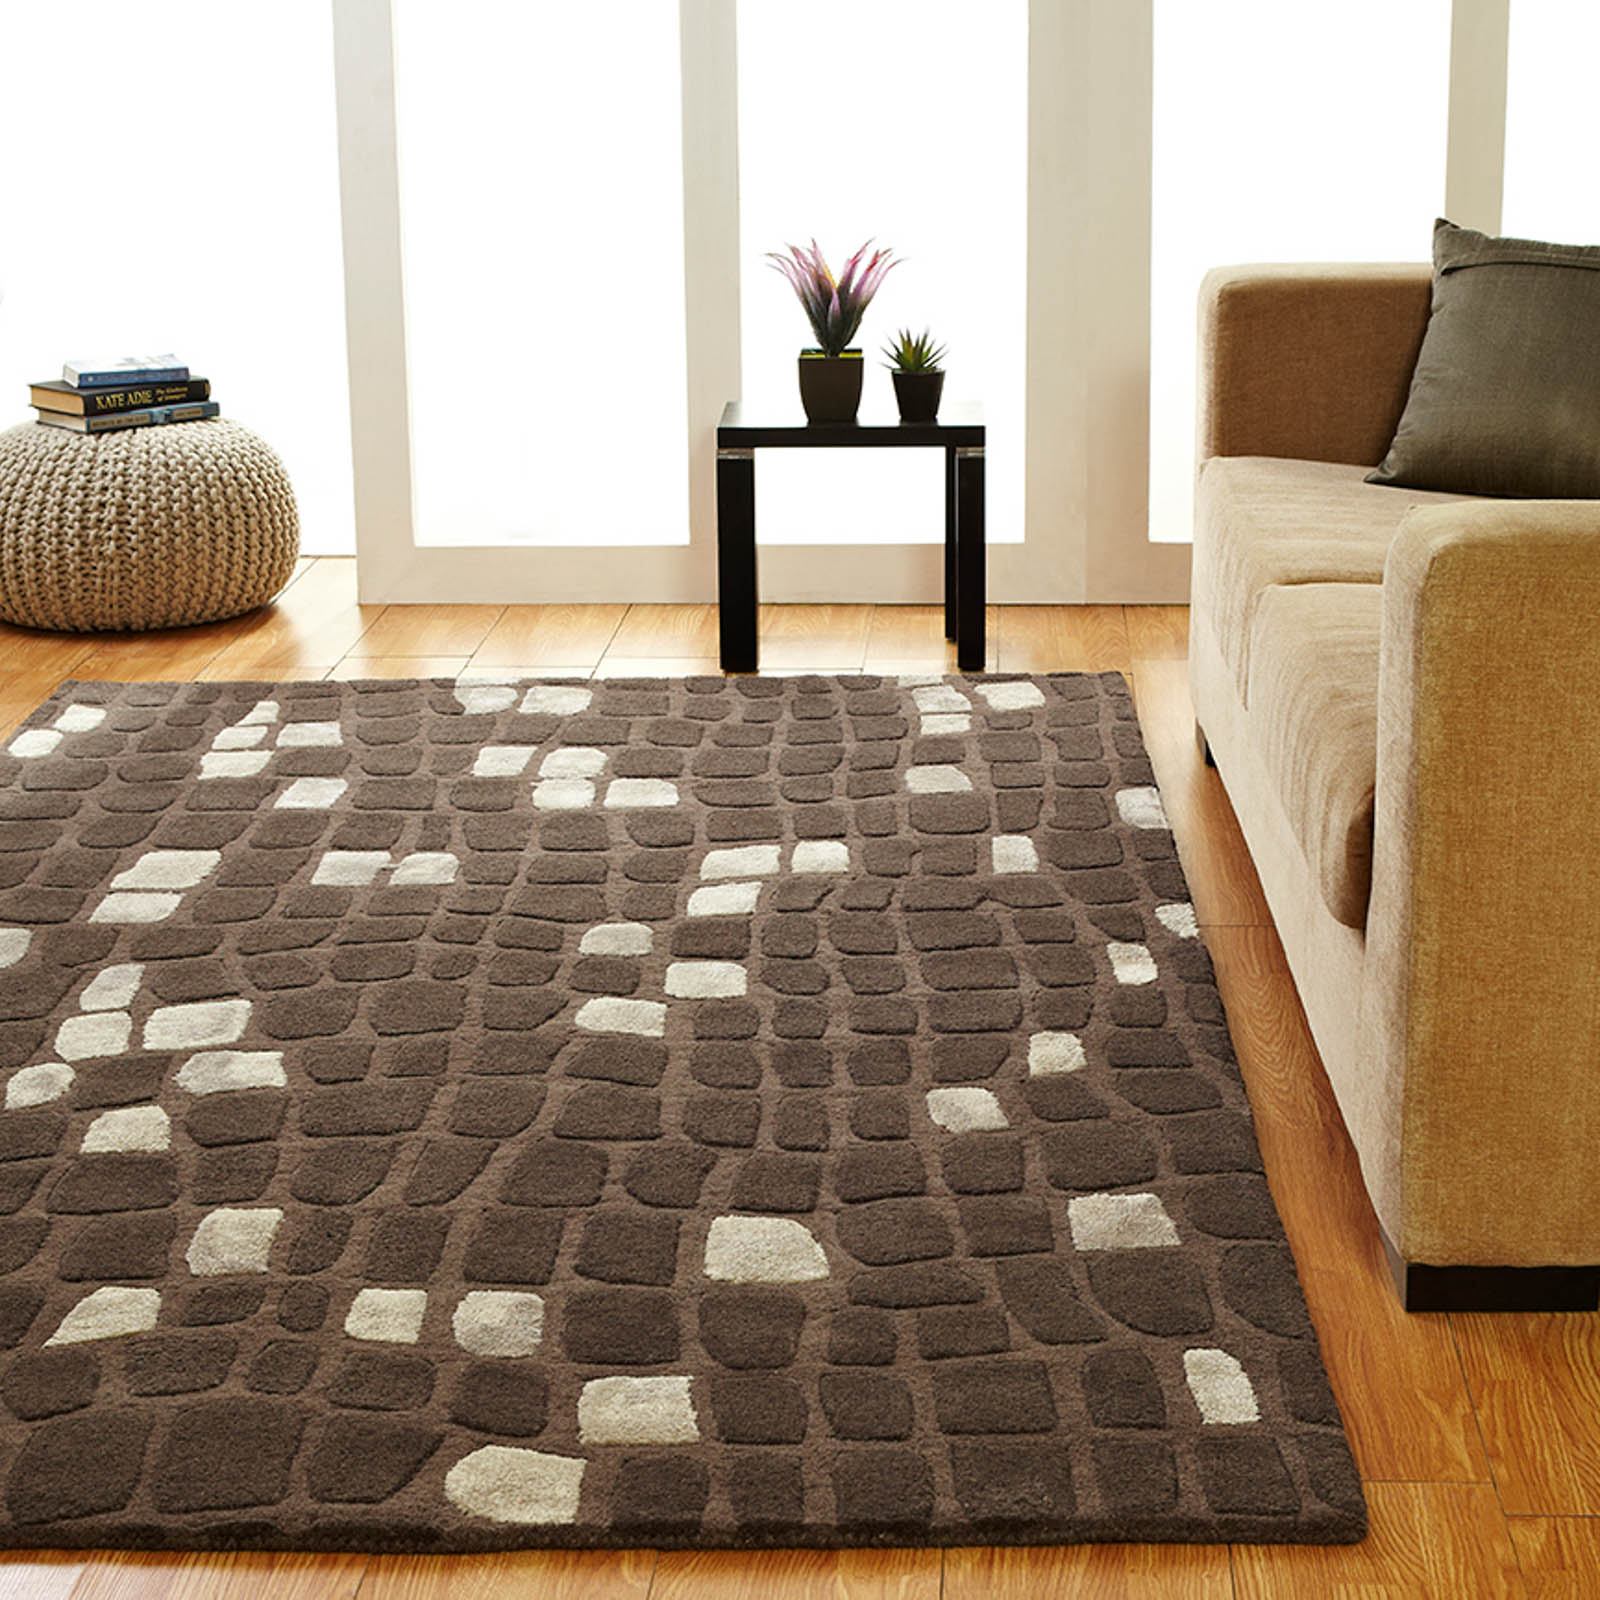 Unique Matrix rugs in Brown Beige